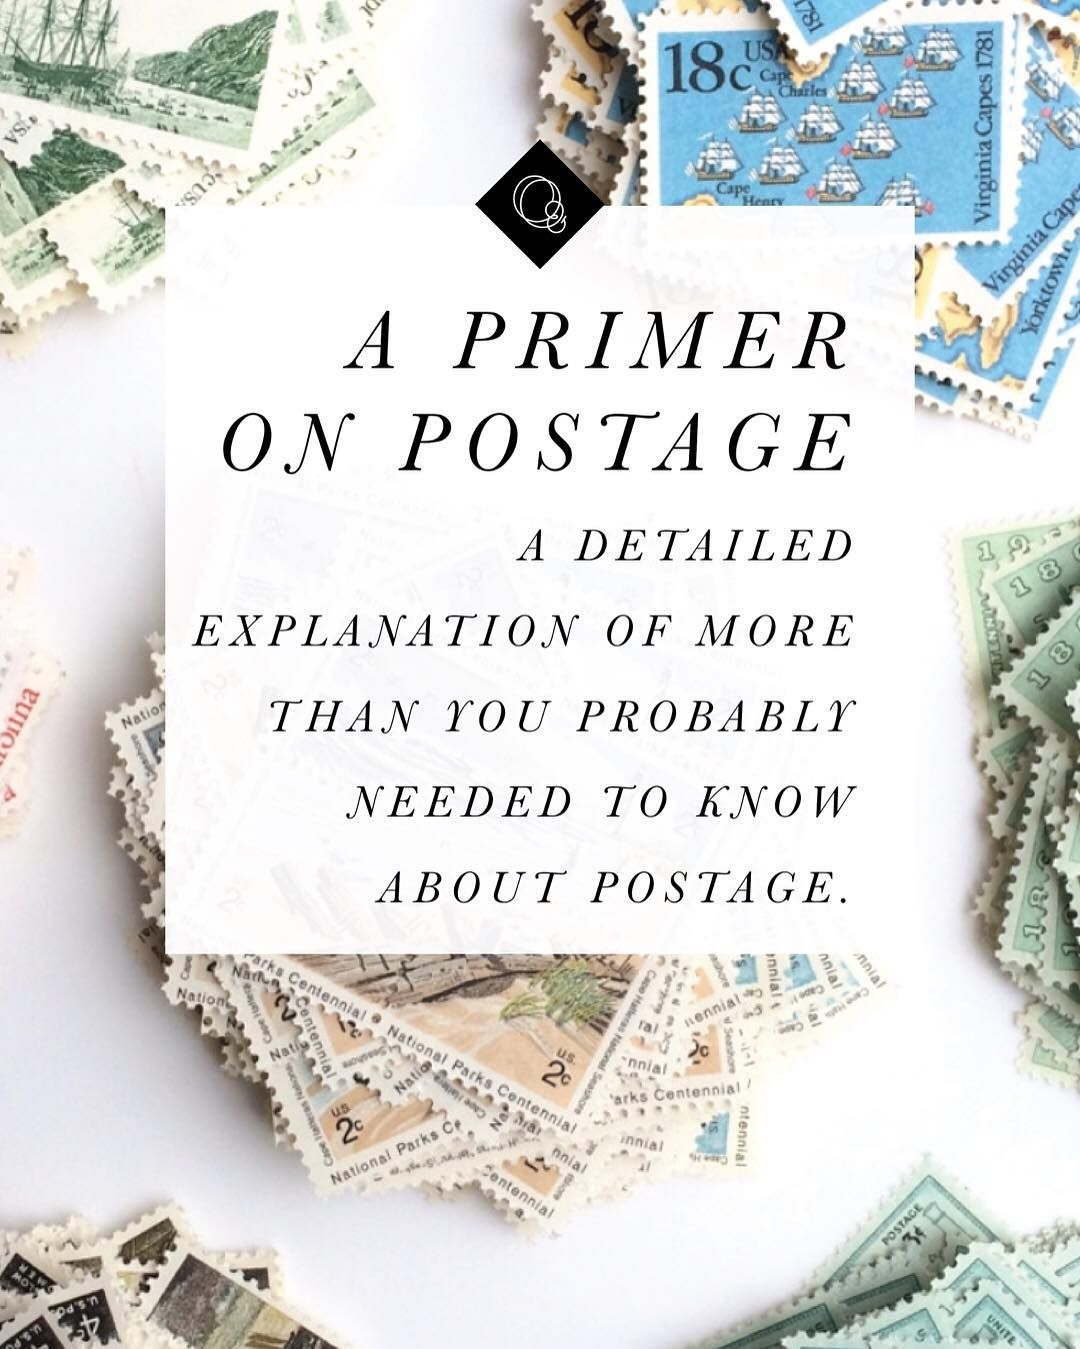 Do You Send Wedding Invitations To Bridal Party: What Kind Of Postage Do You Need To Send A Wedding